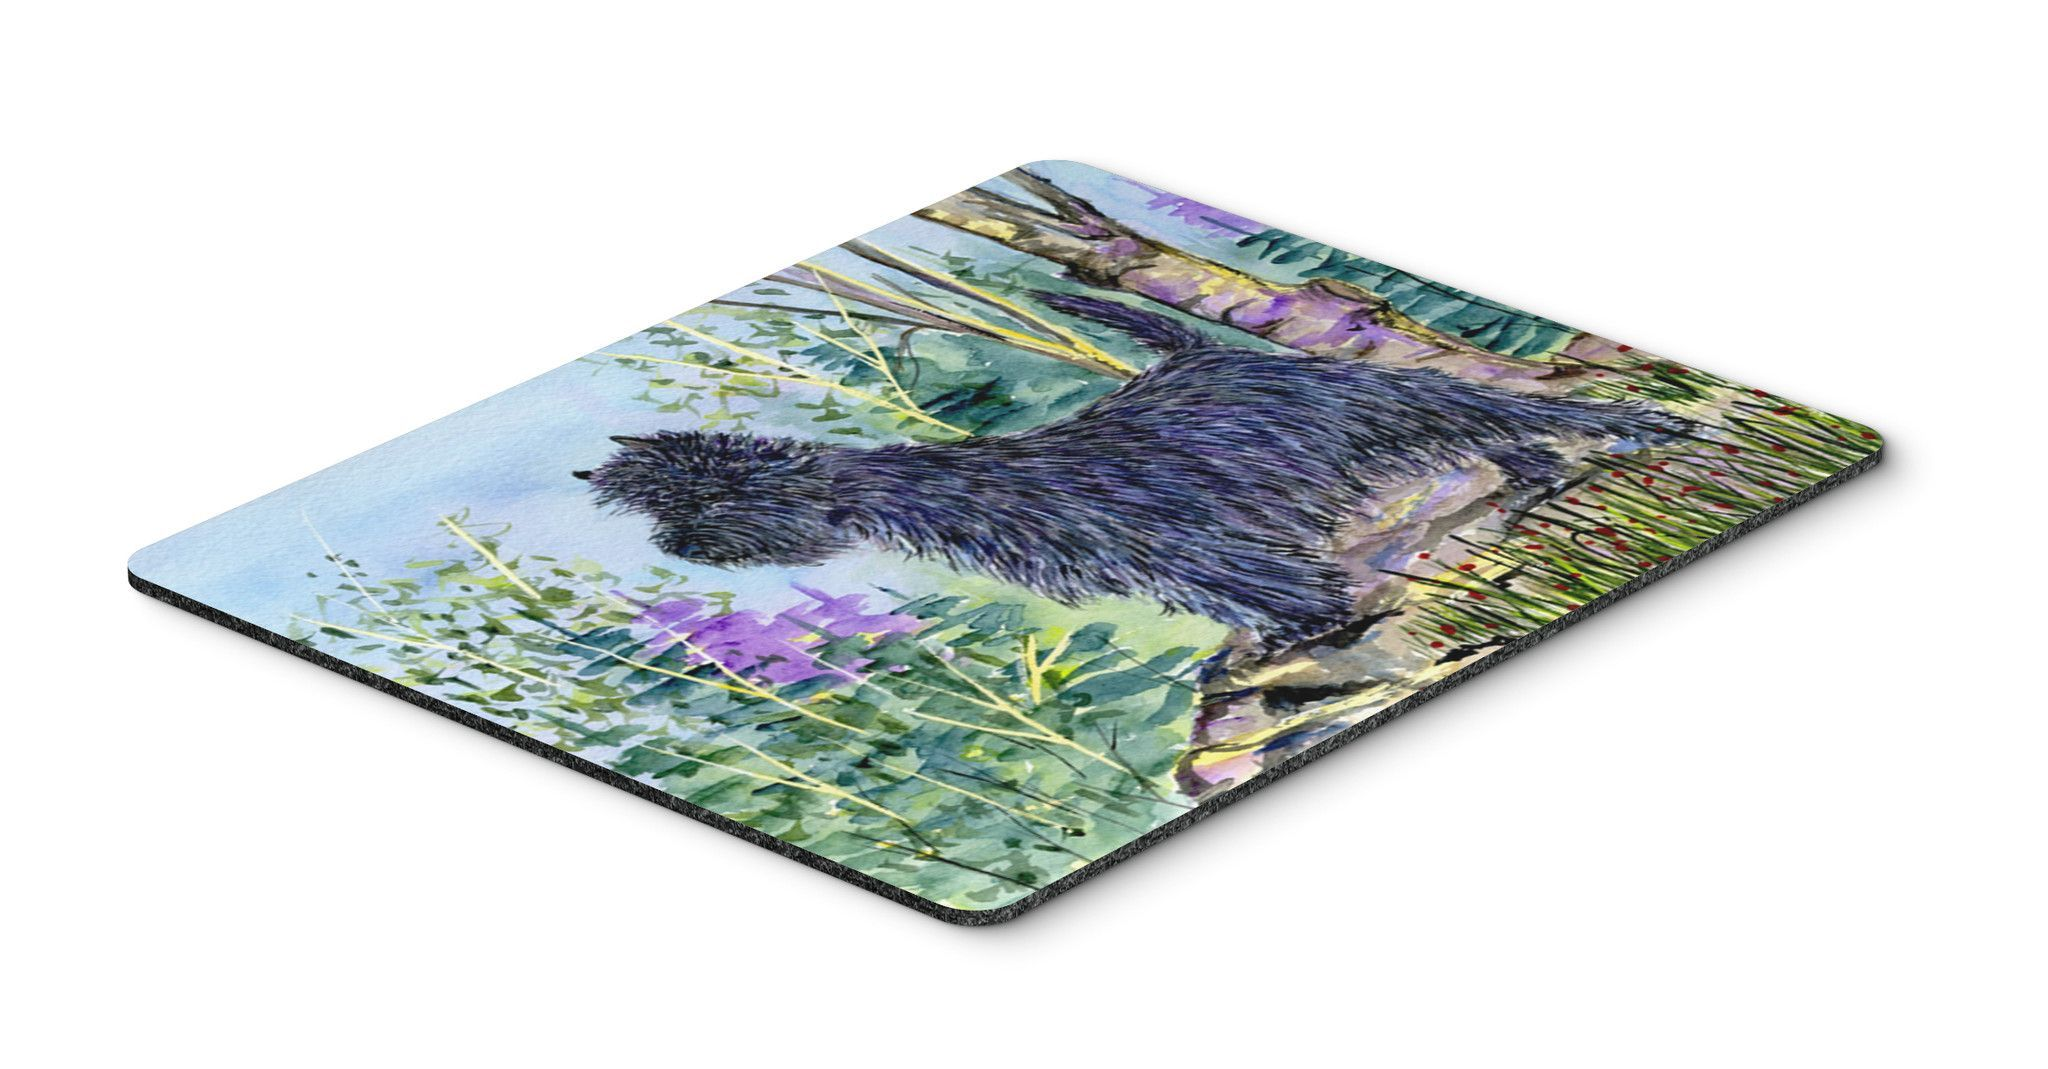 Cairn Terrier Mouse pad, hot pad, or trivet